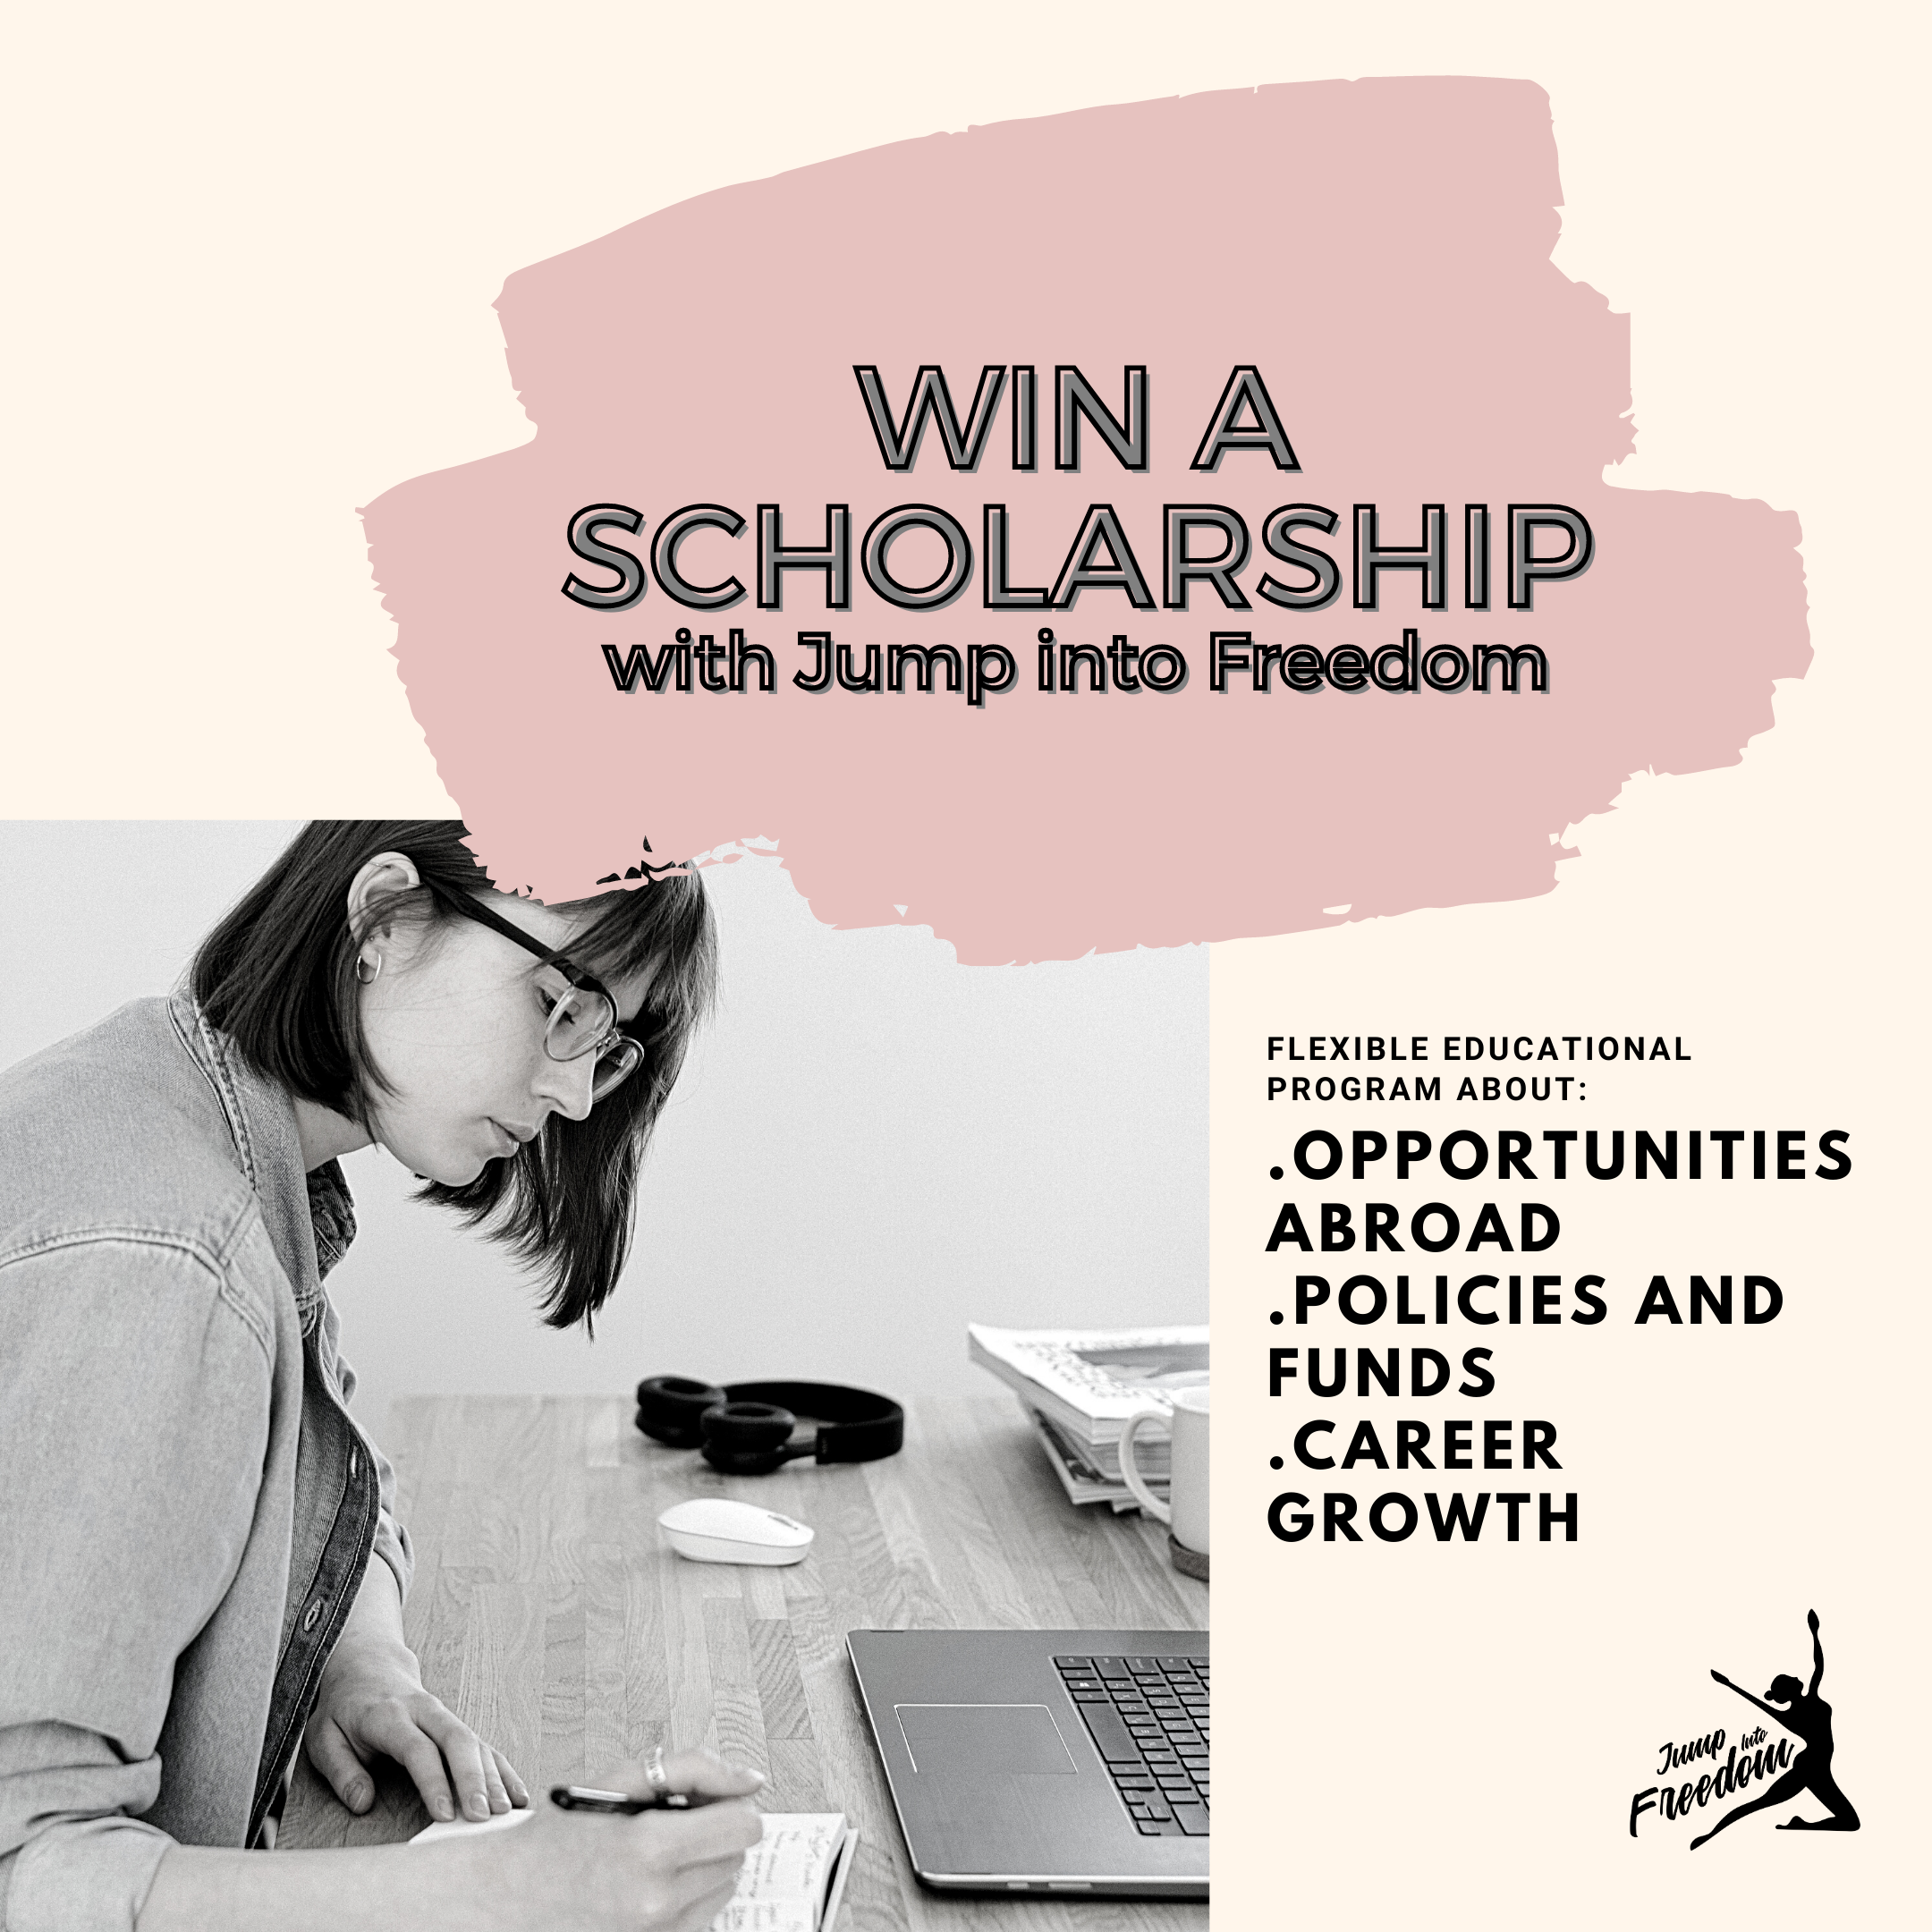 Win a virtual scholarship with Jump into Freedom